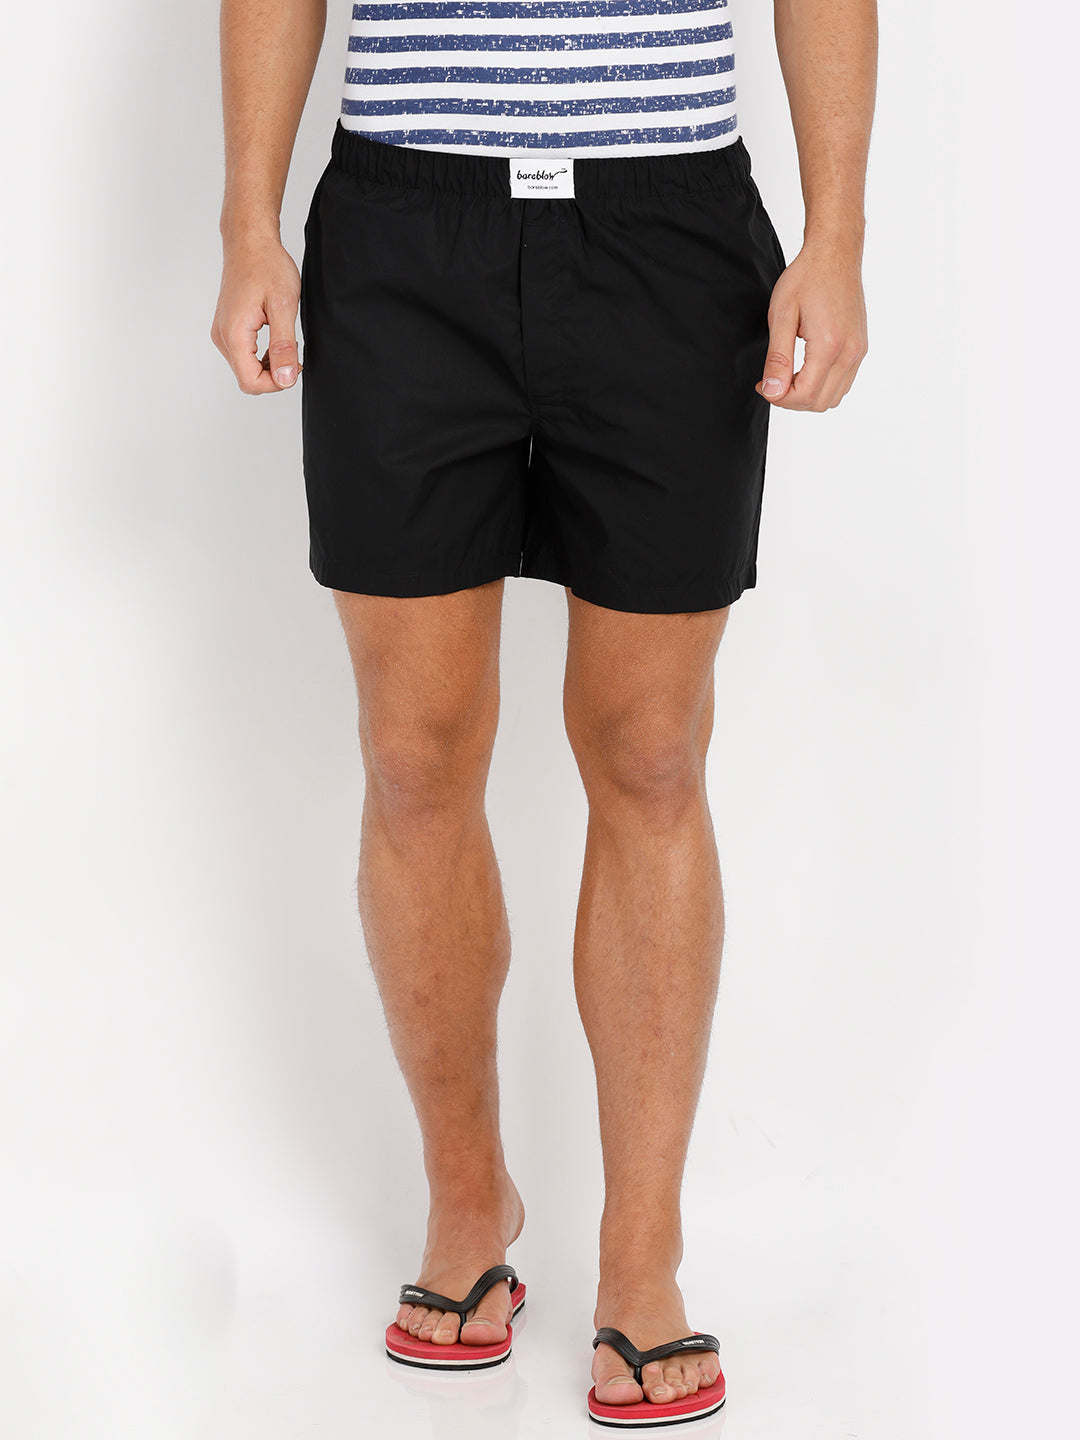 Bareblow Boxers in True Black